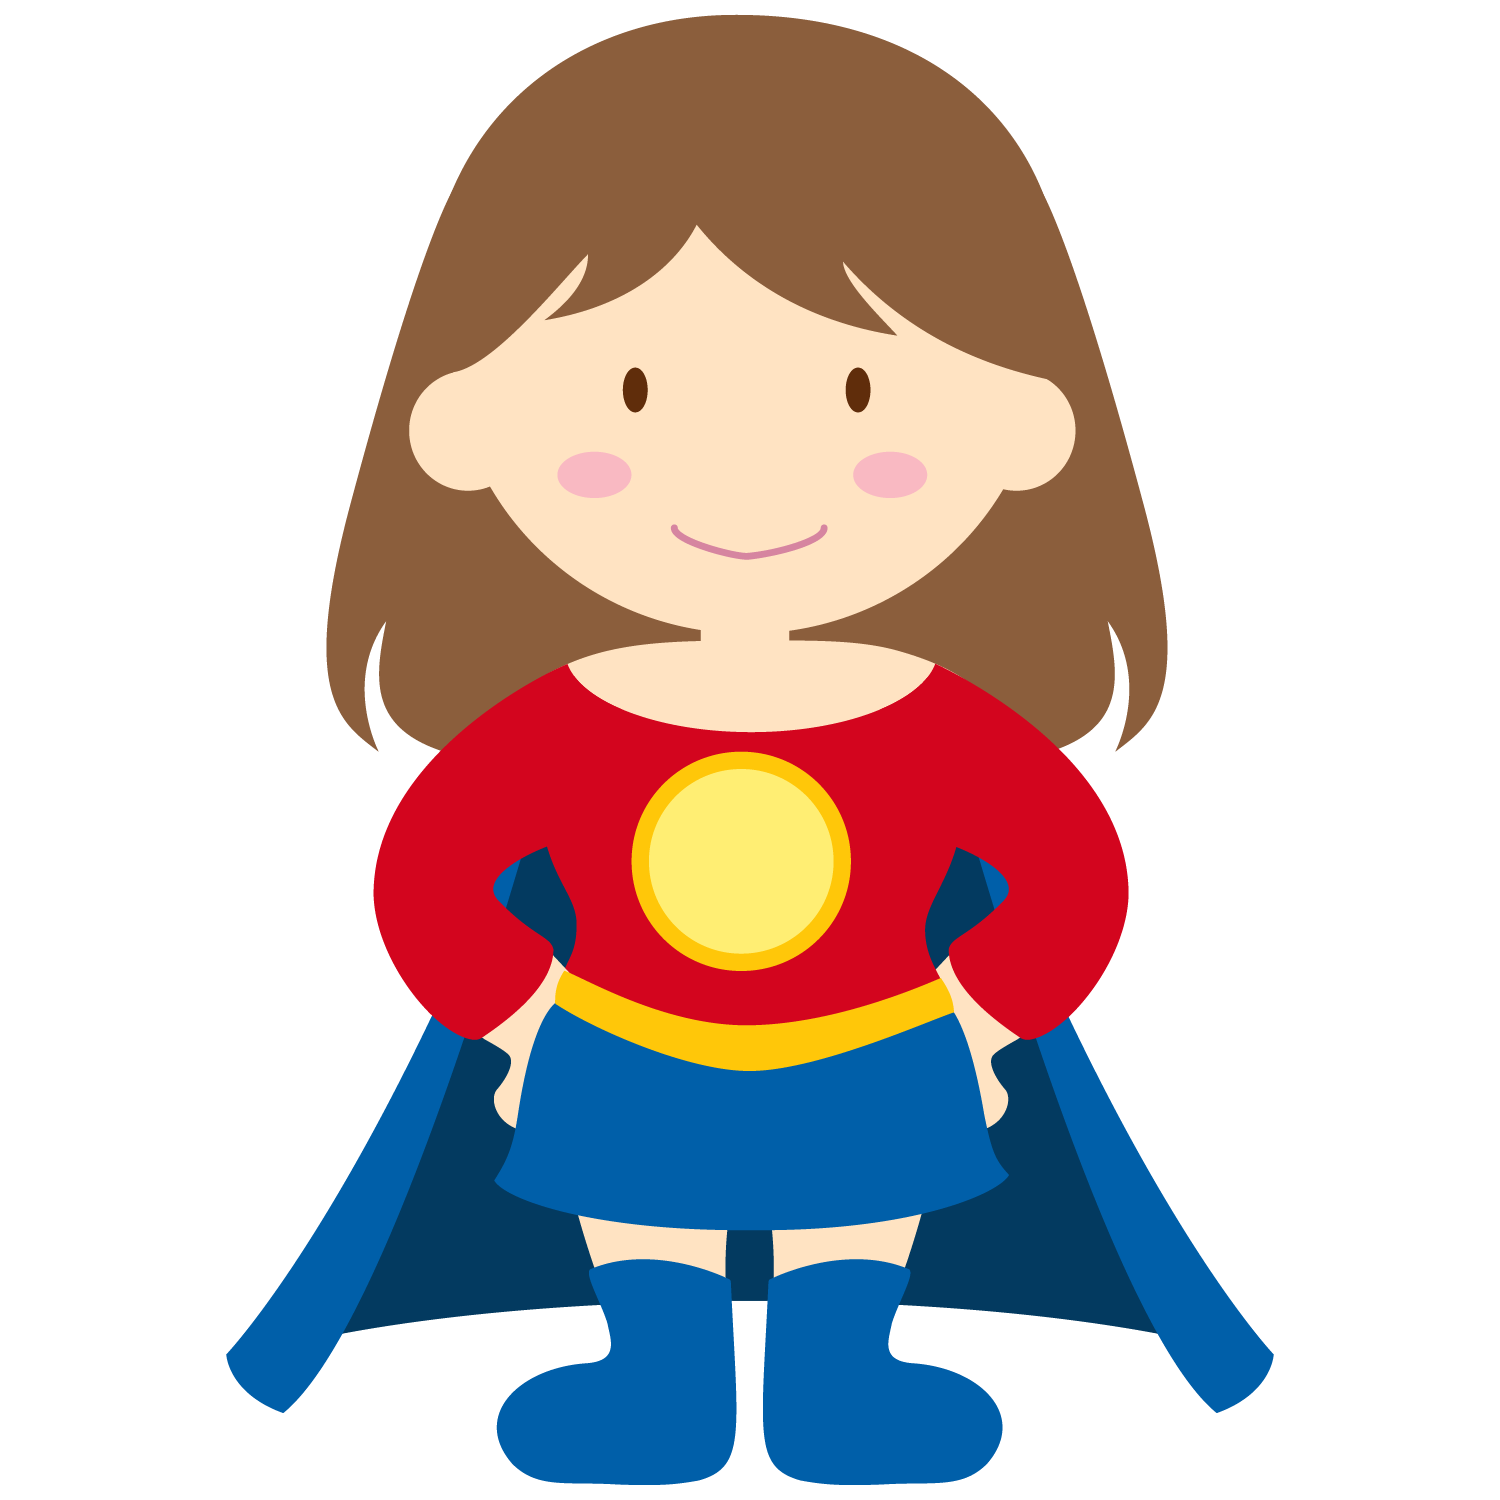 graphic library download Hero child free on. Superheroes clipart fight